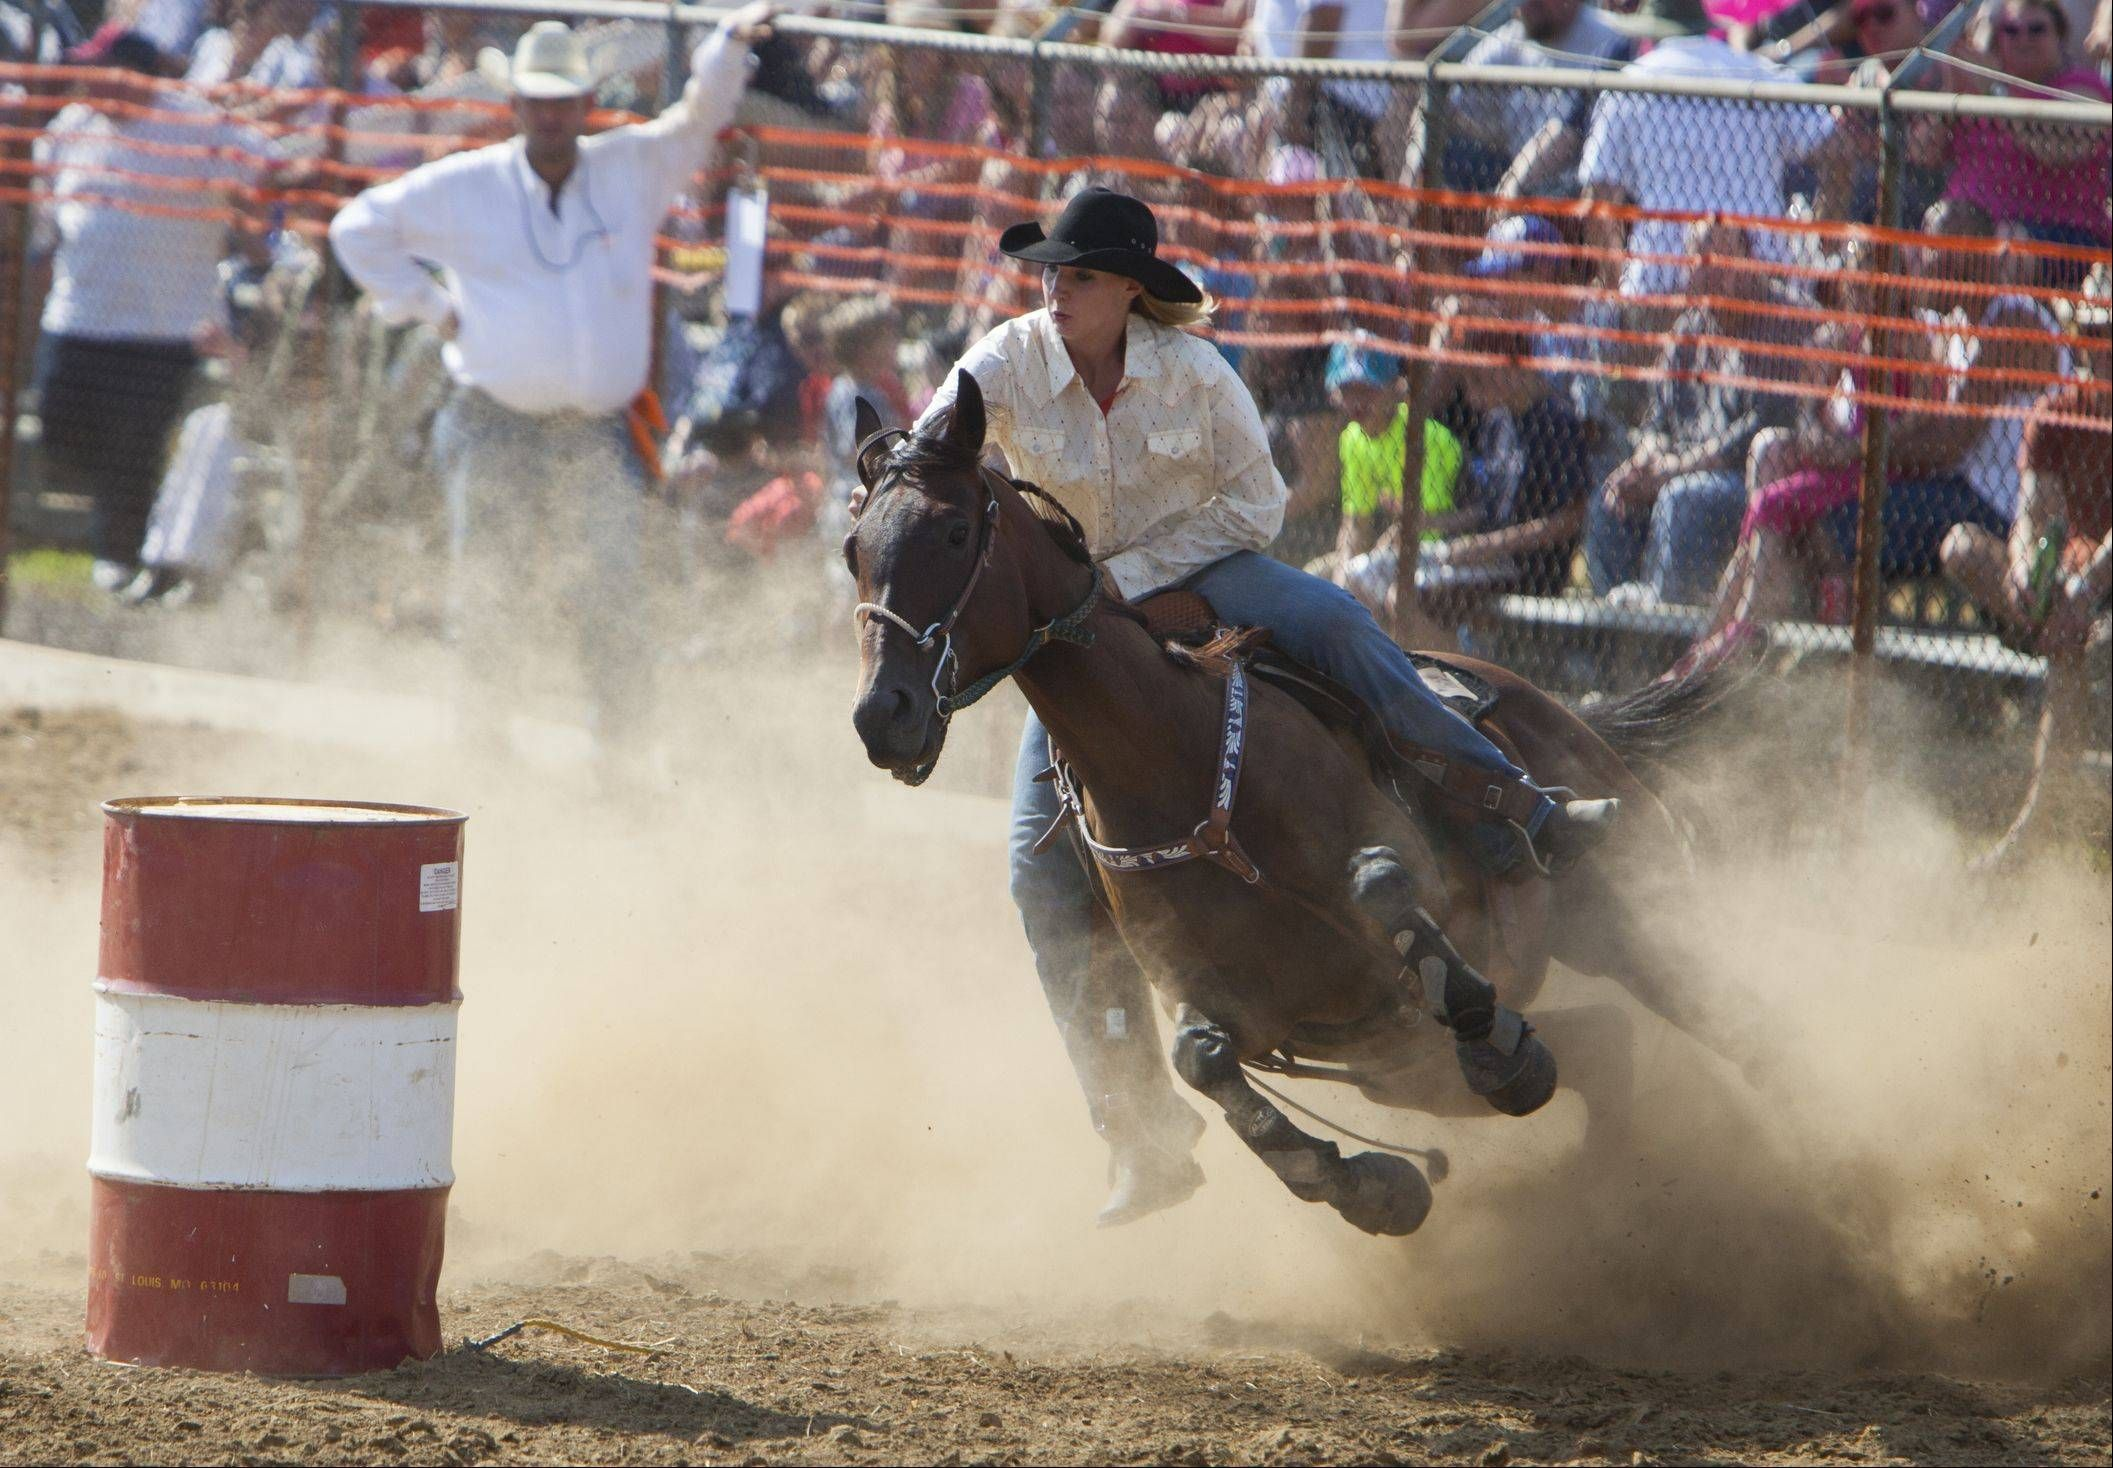 Jamie Gellman of Wauconda rounds a barrel Sunday during the 49th IPRA Championship Rodeo at the Golden Oaks Rodeo Grounds, hosted by Wauconda Chamber of Commerce.